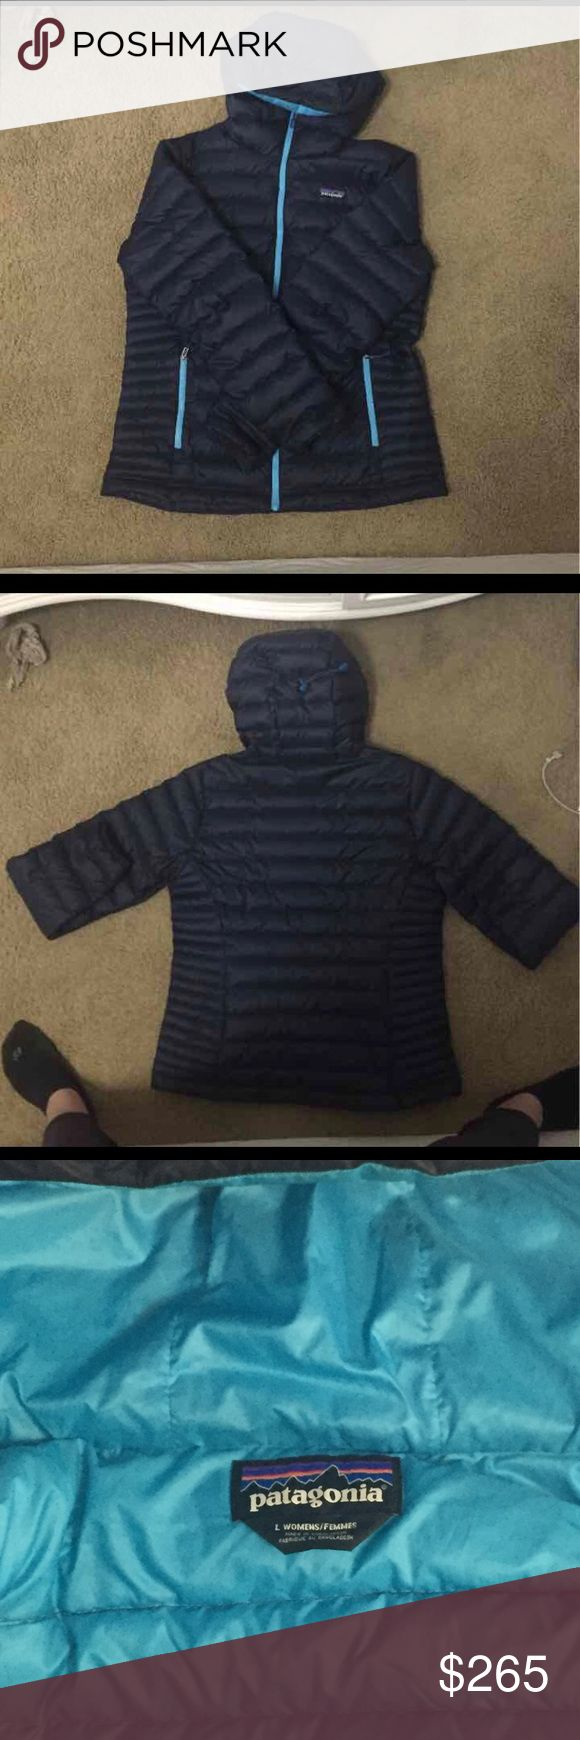 Patagonia Down Sweater Hoody Like new condition. This color is no longer sold and was very popular. It is NOT the navy epic blue color that is on sale for $200. It was navy and ultramarine blue, not for sale ANYWHERE.   Women's L.   Please don't waste my time or yours with disrespectfully low offers.   I will only entertain reasonable offers. Patagonia Jackets & Coats Puffers